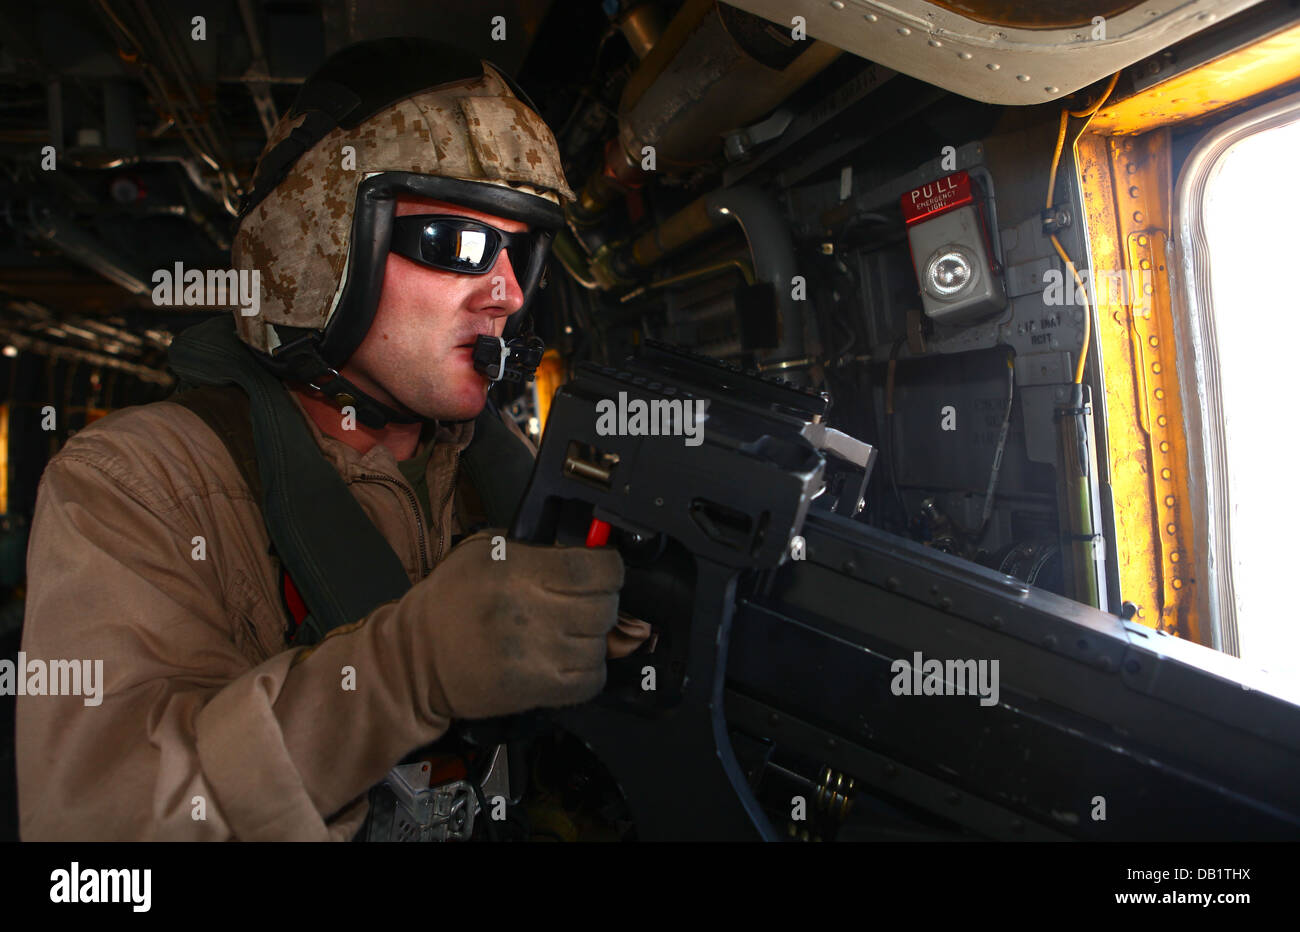 Staff Sgt. Franklin Williams, an aviation ordnance technician with Marine Heavy Helicopter Squadron 465 'Warhorses' - Stock Image